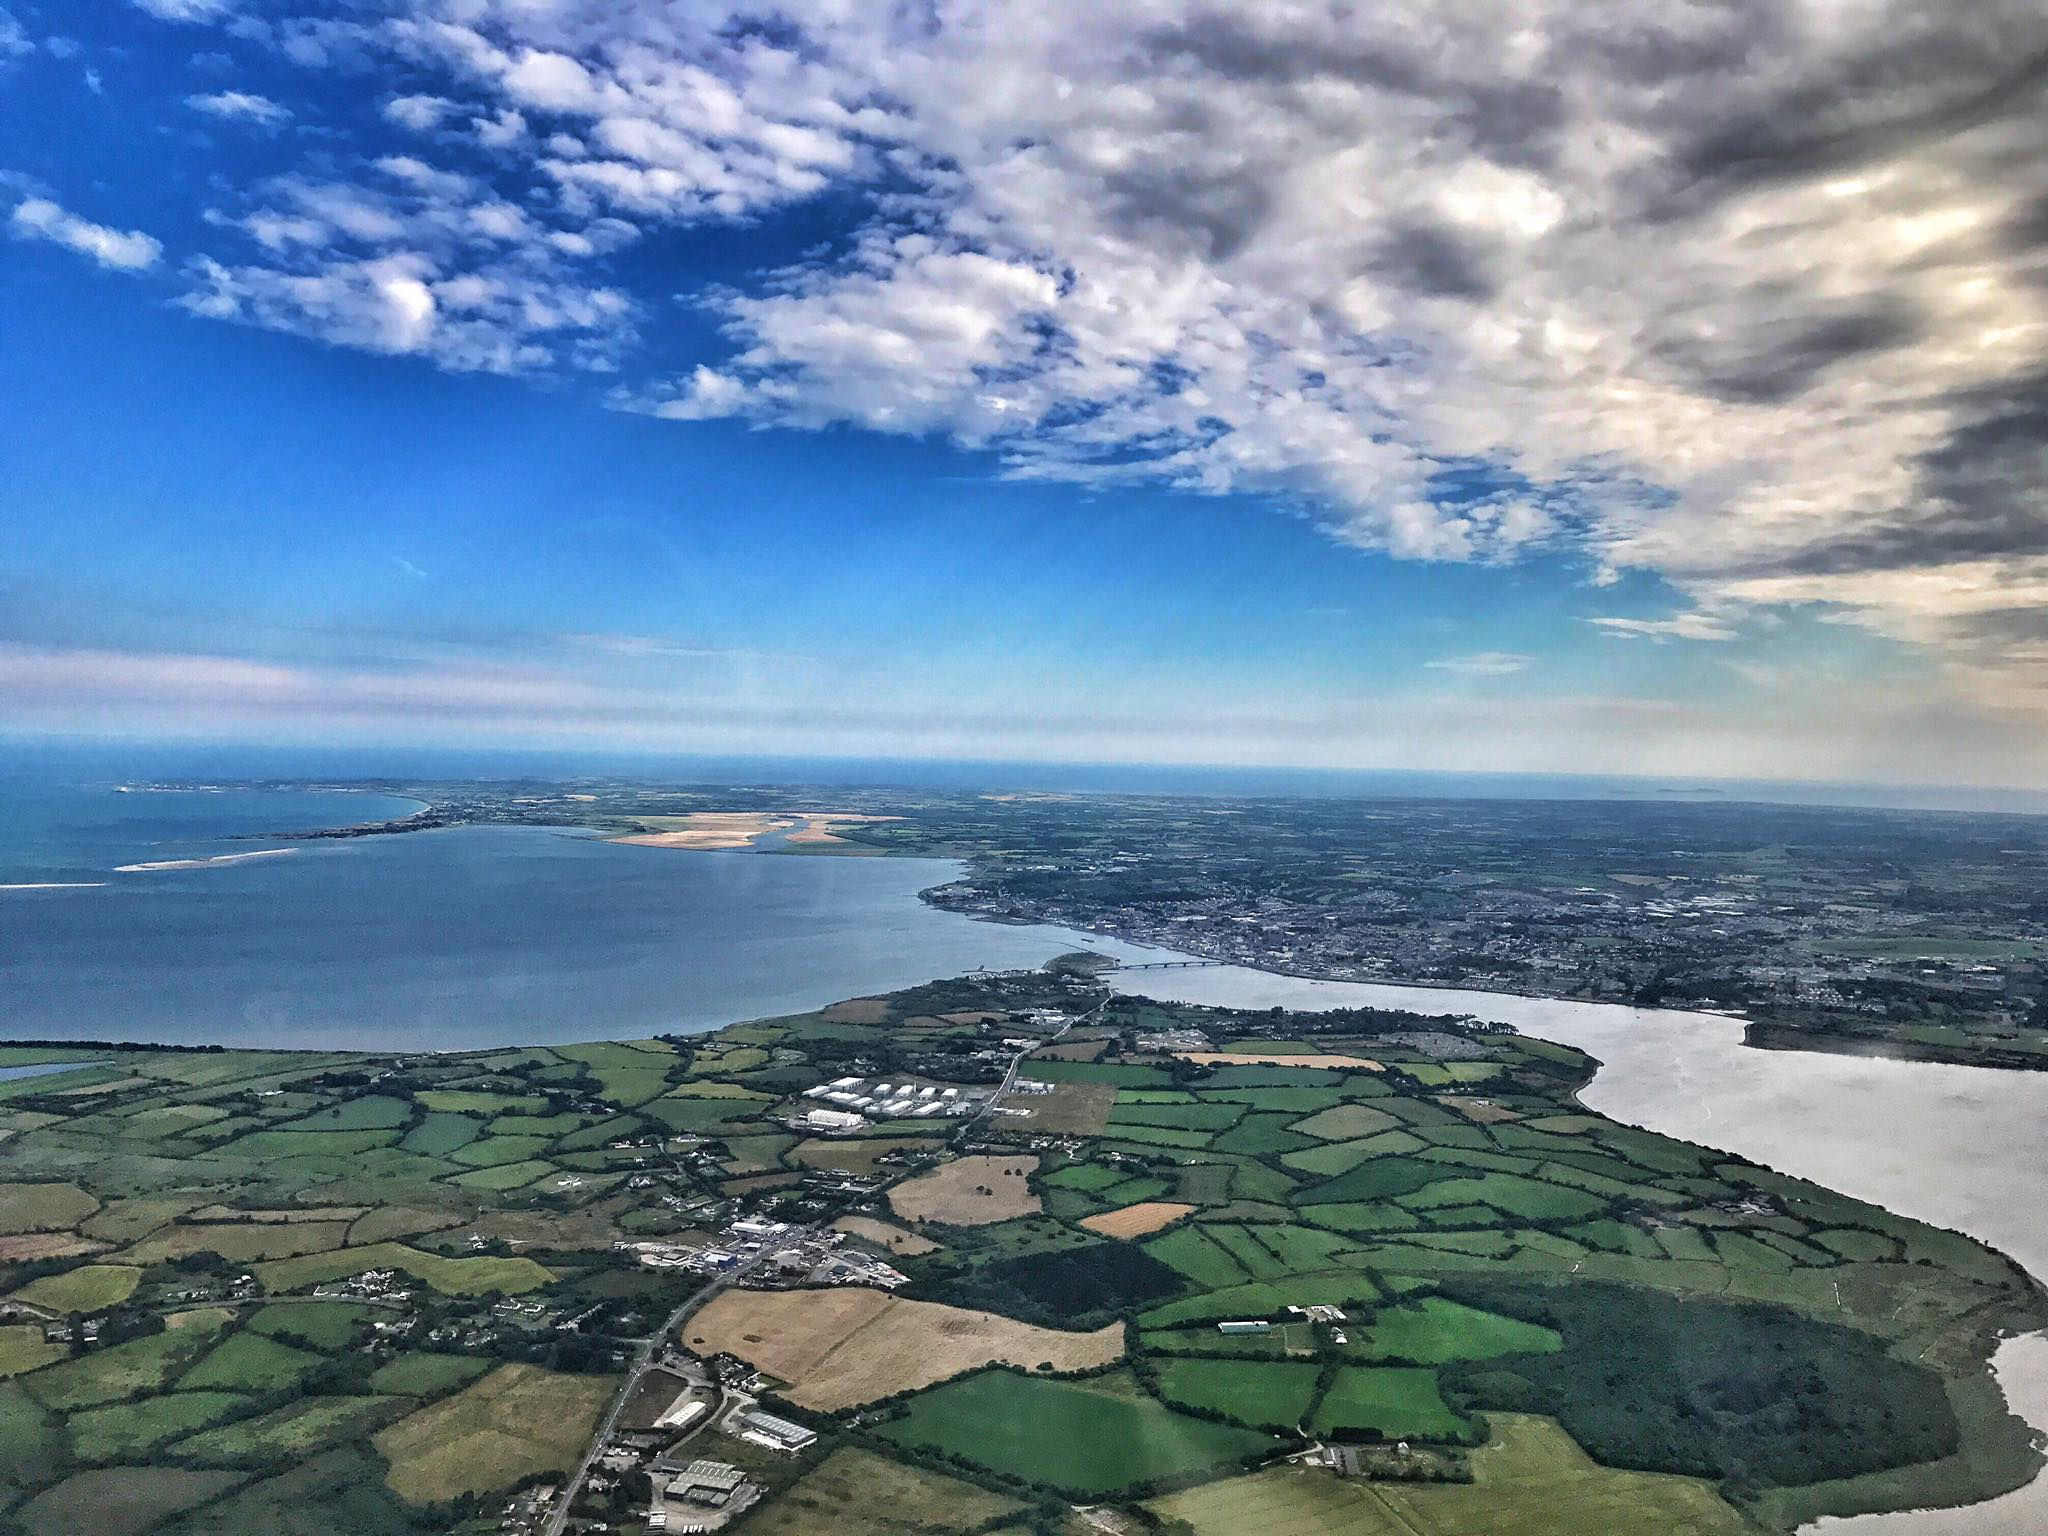 Ireland from the sky